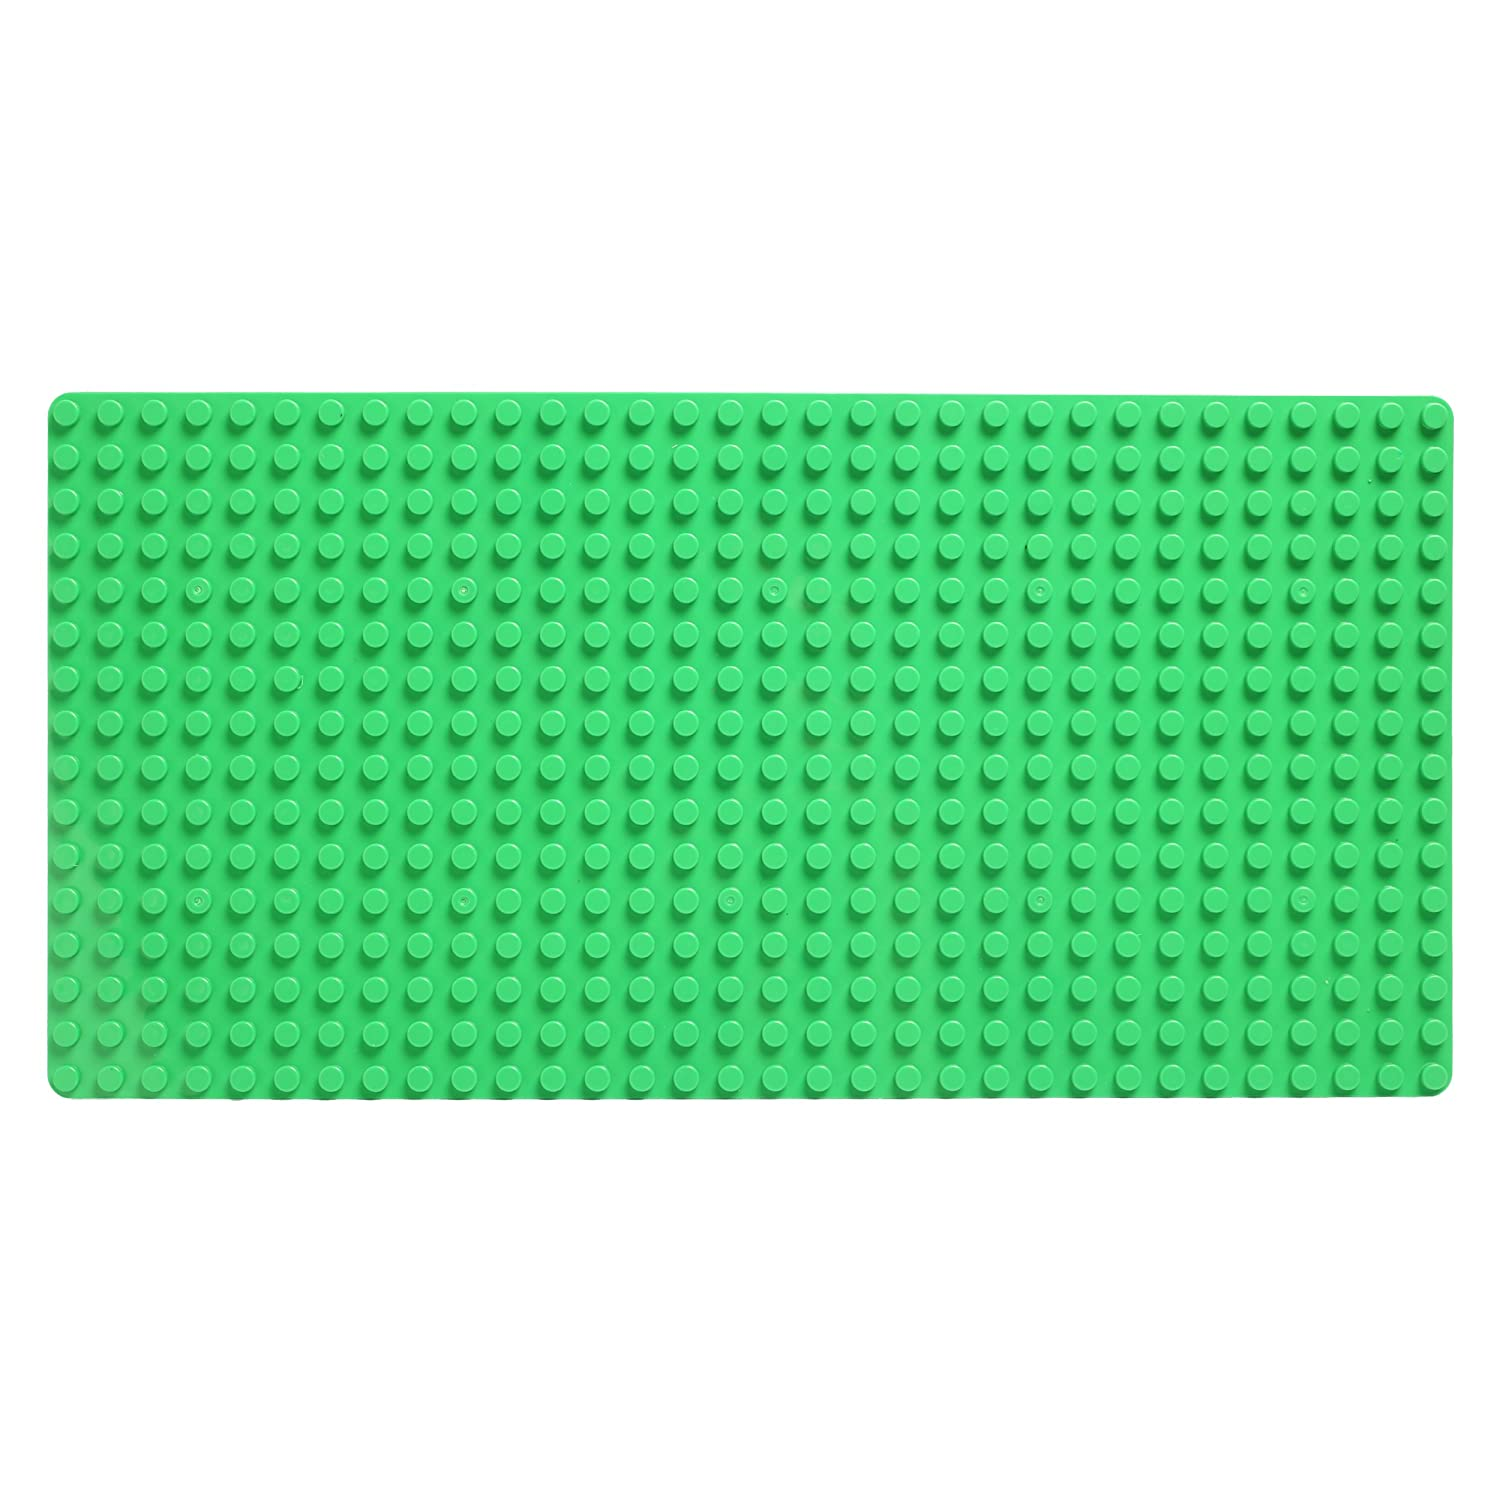 Katara 1739 Baseplate With Large Dots, Compatible With Lego Duplo, Hubelino, Papimax, Unico Plus, Base Plates For Construction Games - 3 Piece Set - Green, Blue, Pink